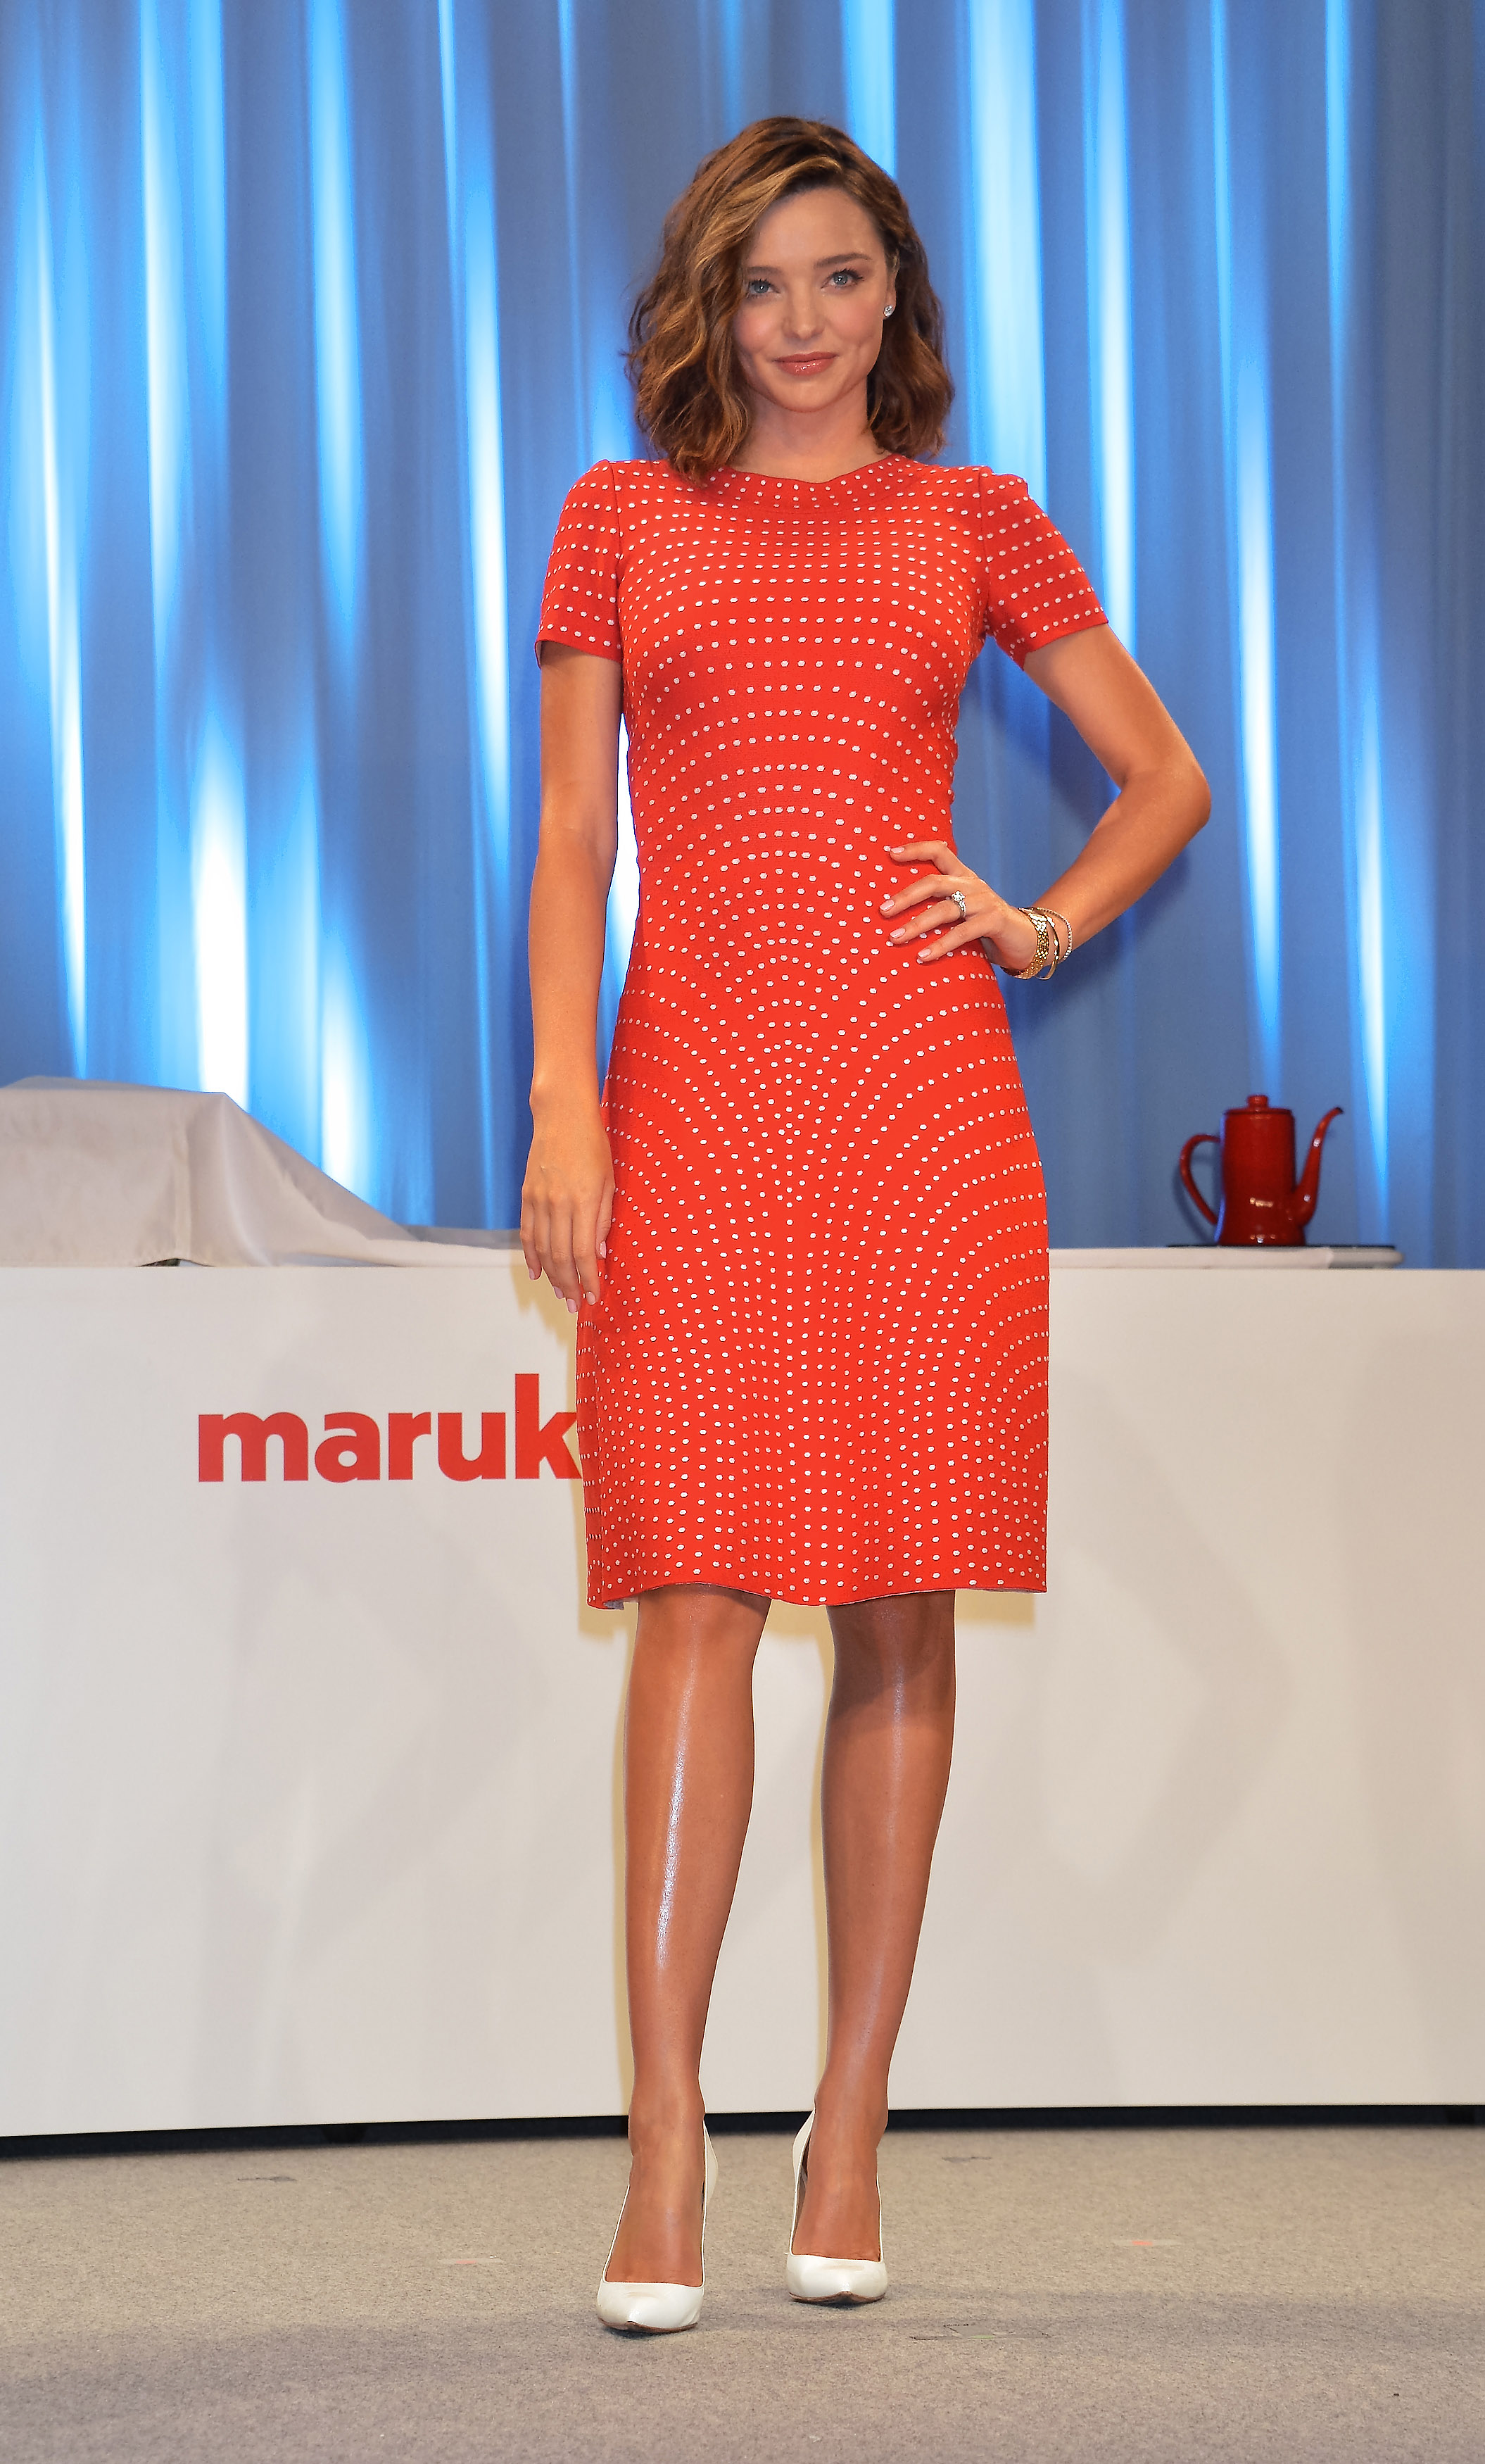 Model Miranda Kerr attends an event for fermented foods company, Marukome Co.,Ltd. in Tokyo, Japan on July 10, 2017.   Photo by /UPI, Image: 341389571, License: Rights-managed, Restrictions: , Model Release: no, Credit line: Profimedia, UPI